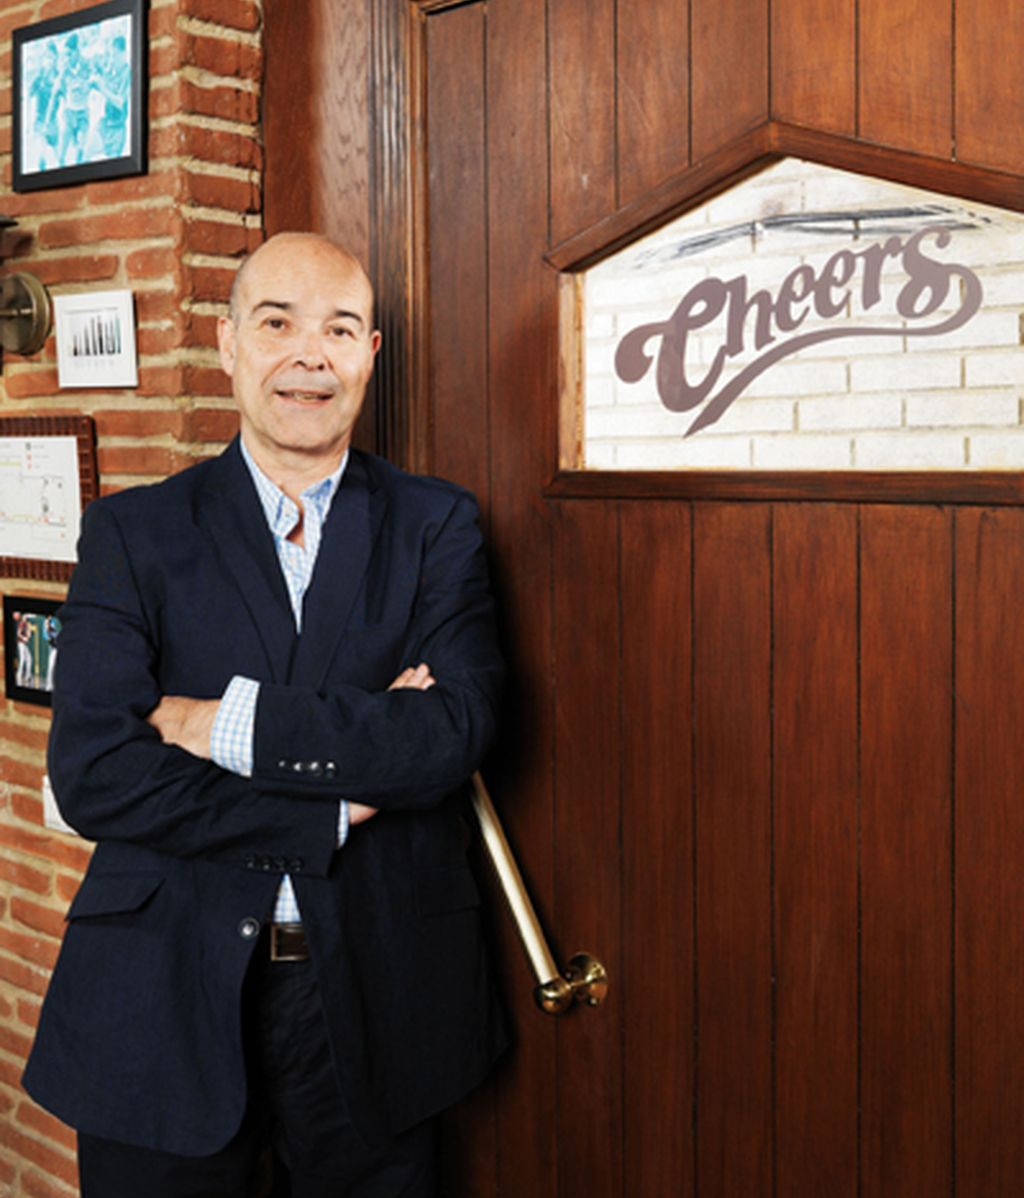 'Cheers' (Telecinco)